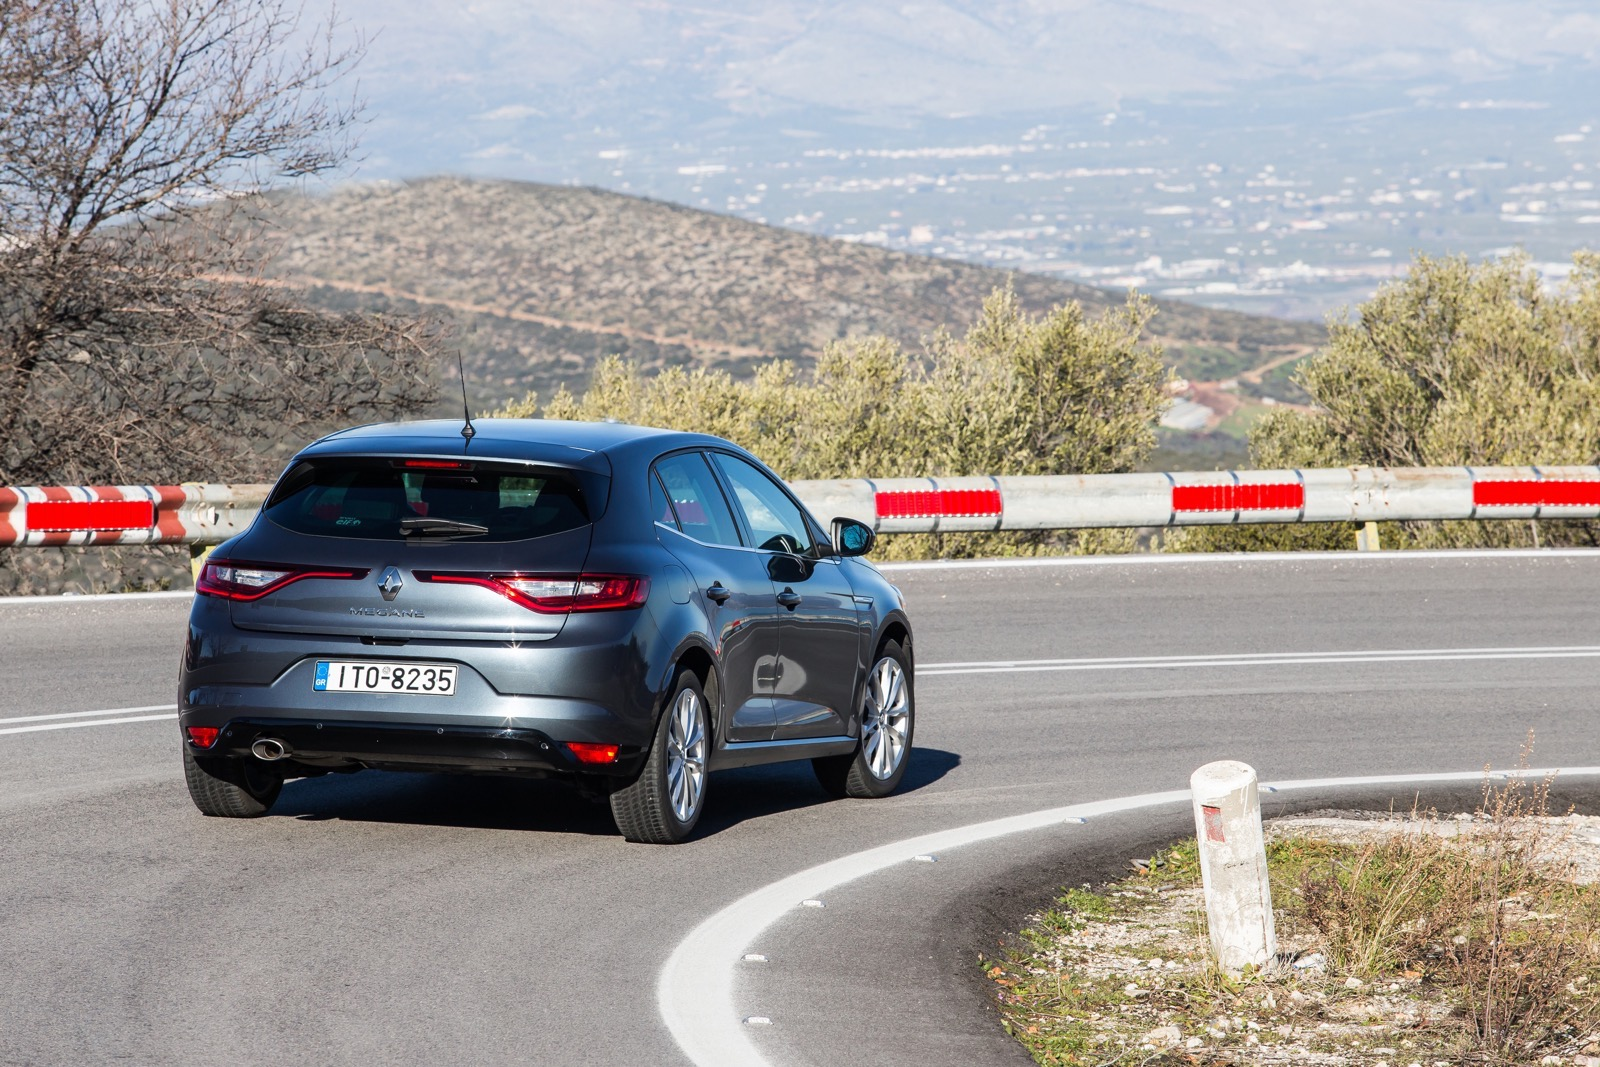 First_Drive_Renault_Megane_61